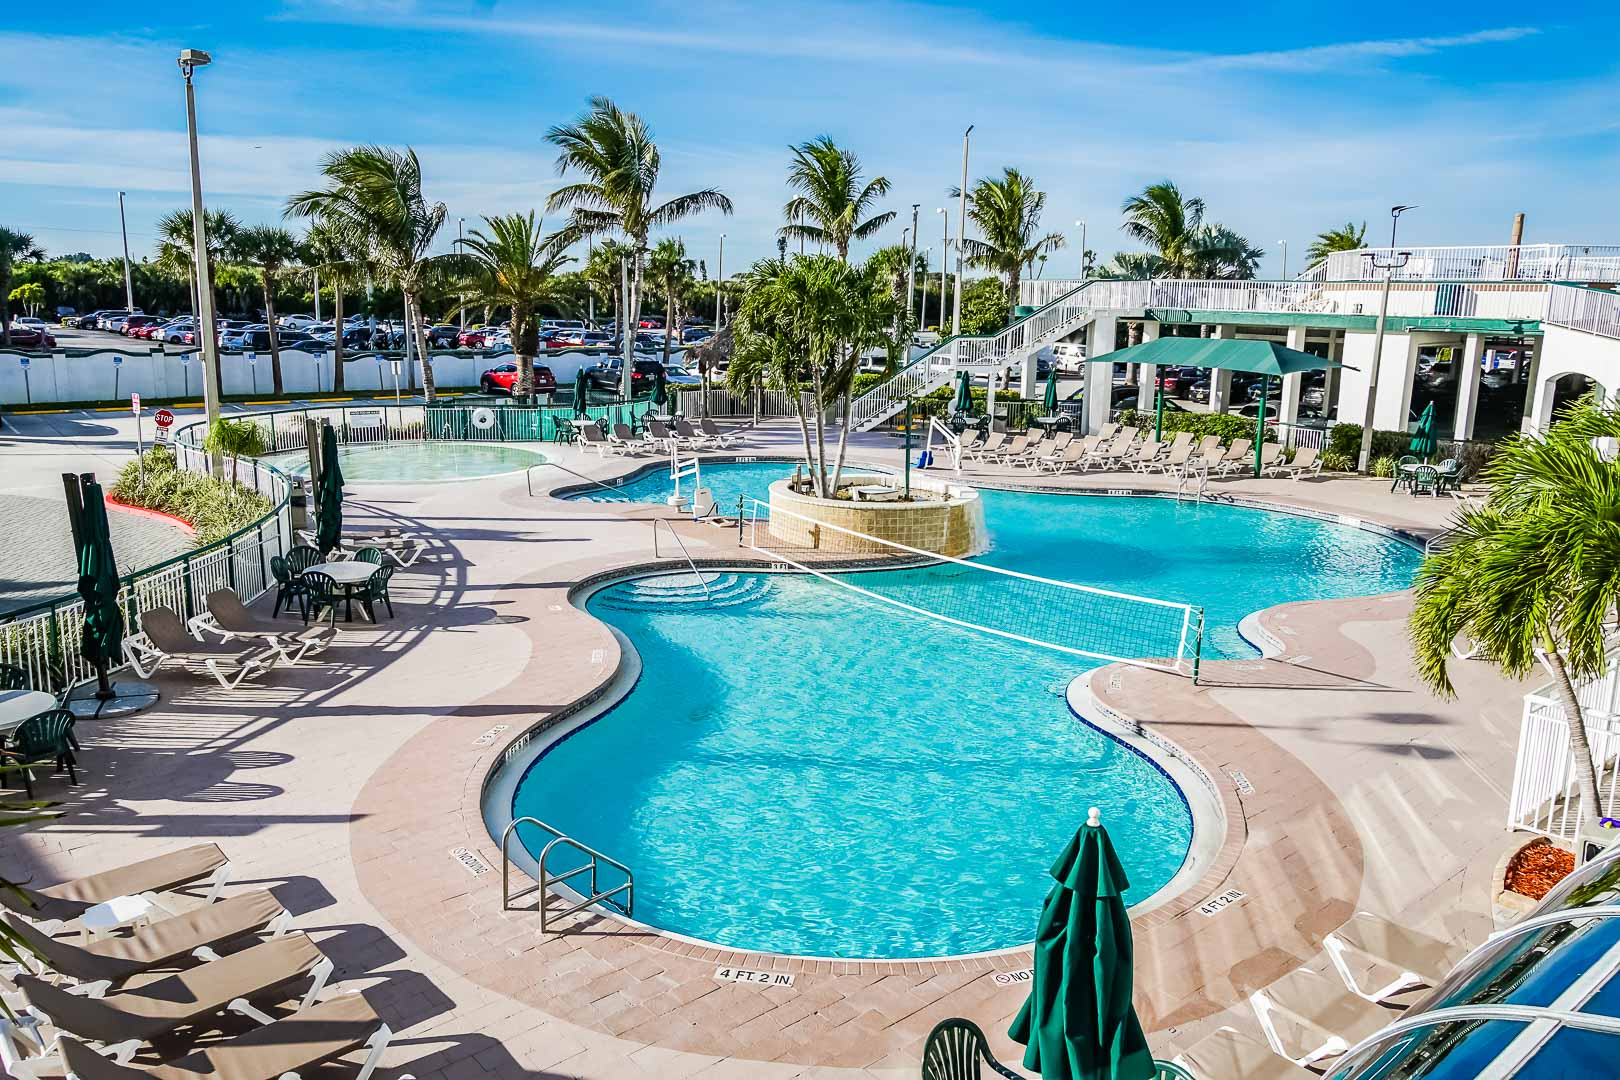 A crisp pool at VRI's The Resort on Cocoa Beach in Florida.